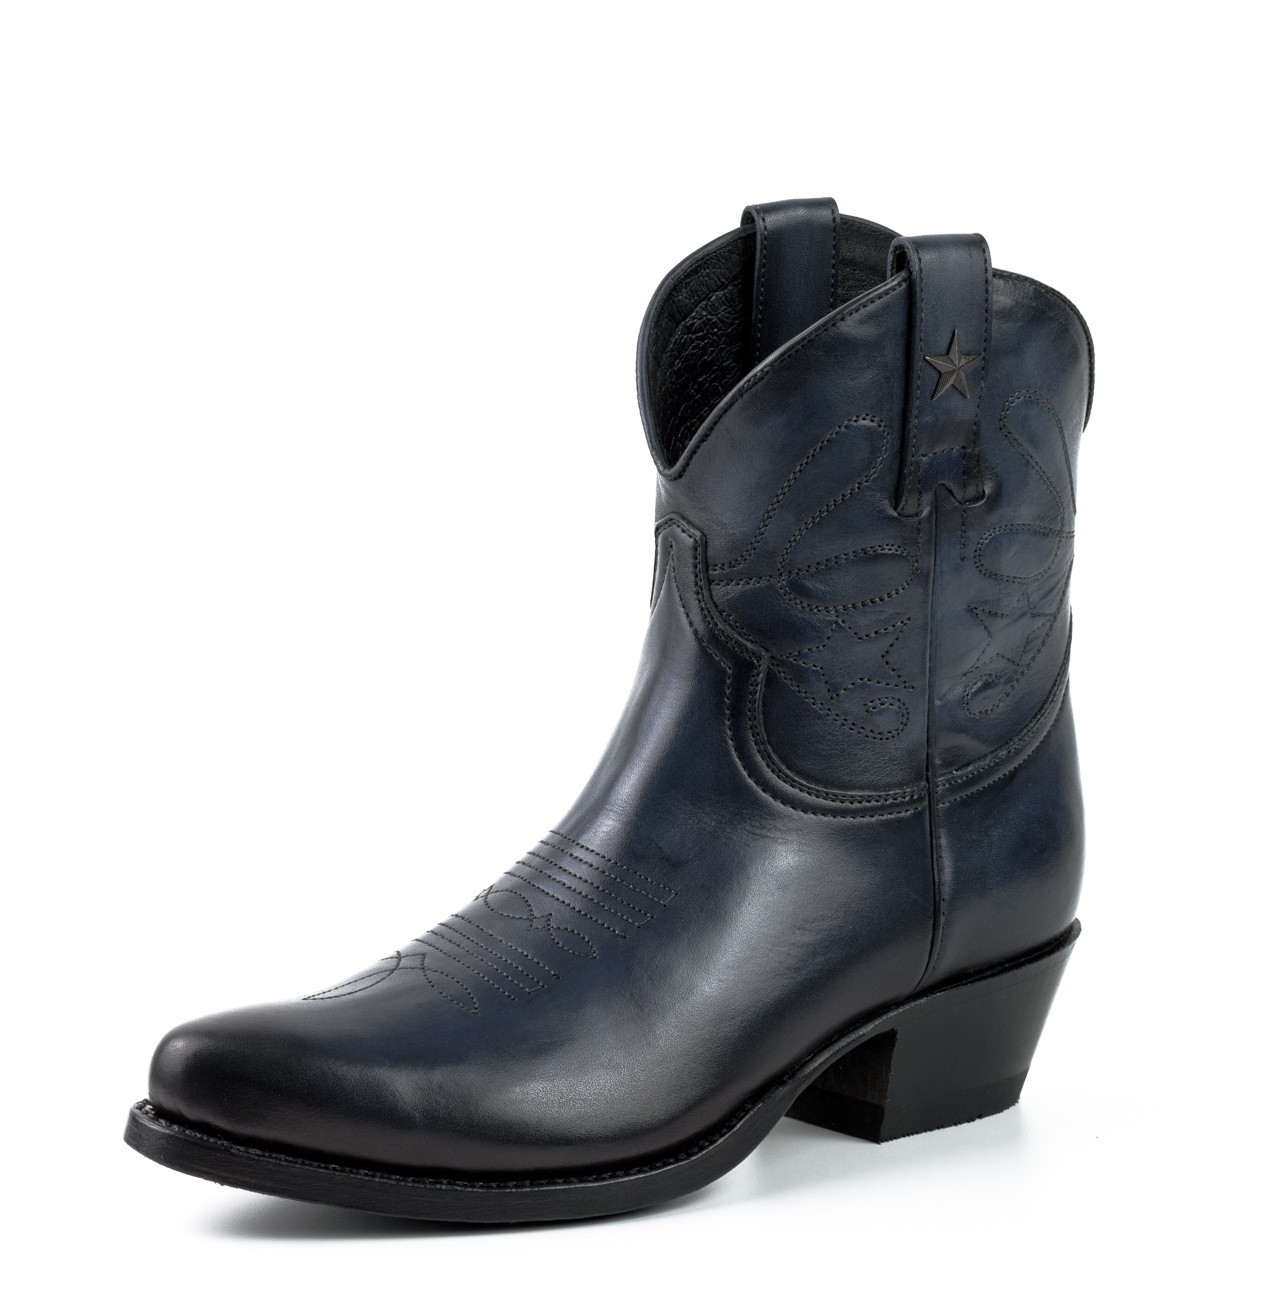 NAVY LEATHER COWBOY ANKLE BOOTS leather